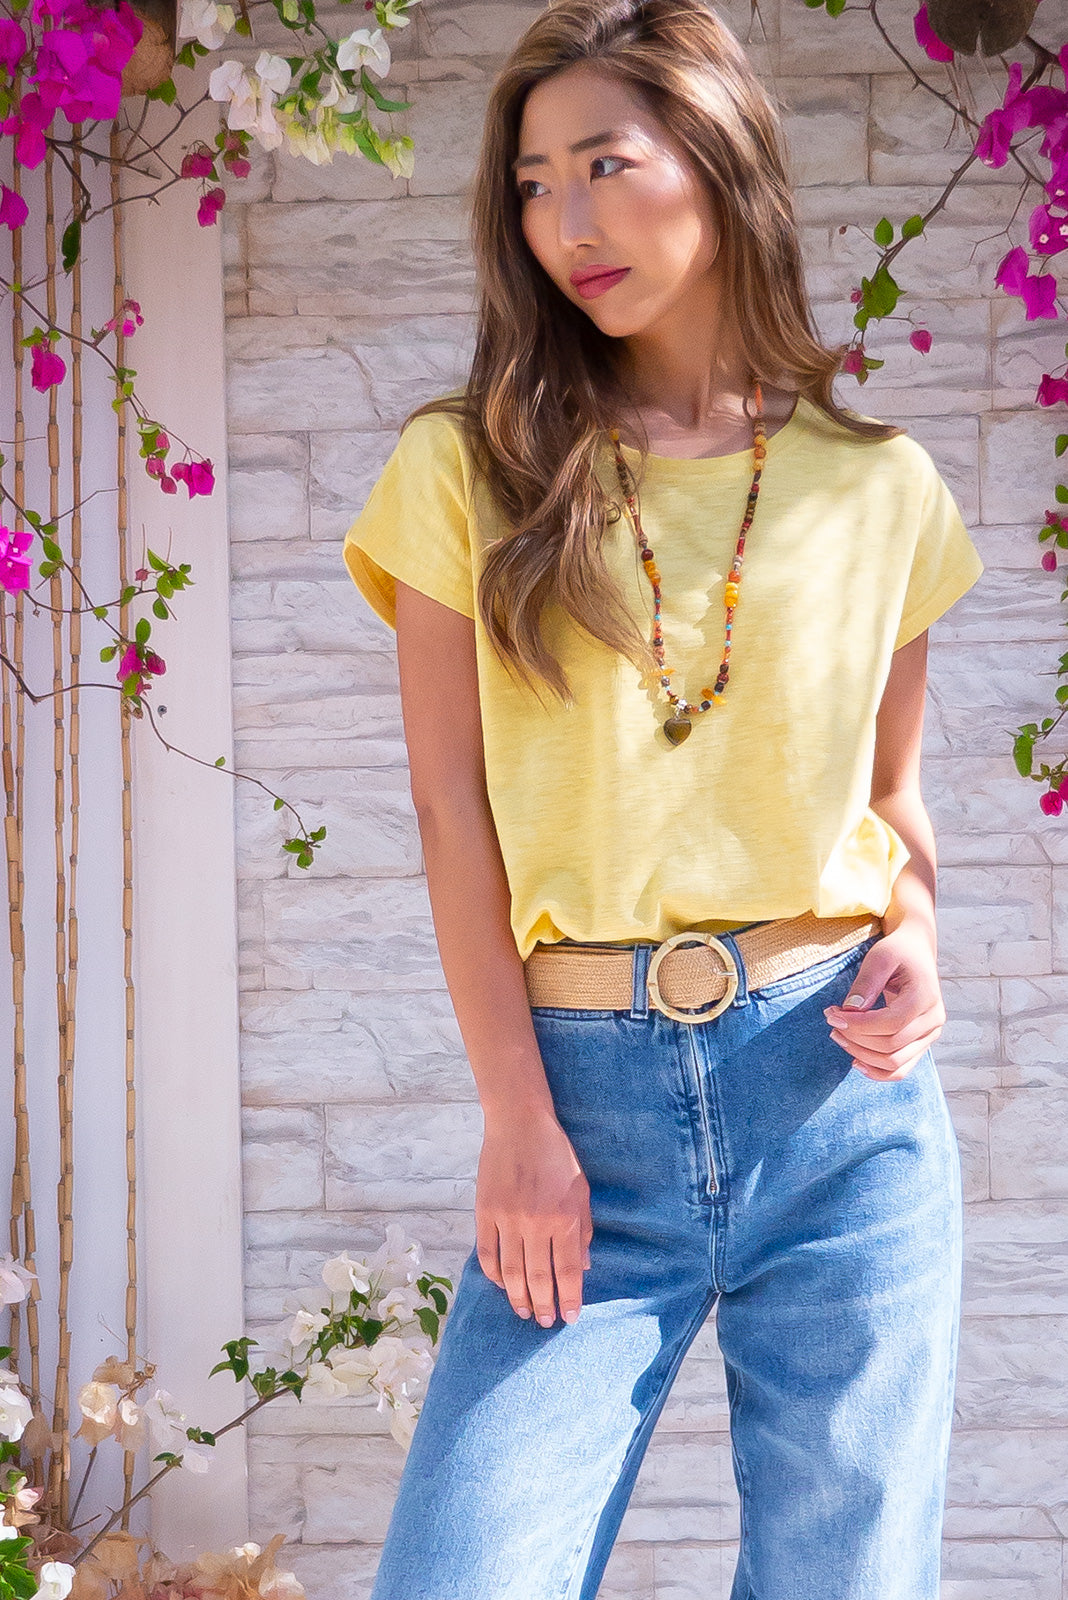 Phoenix Tee Golden Sun Yellow Cotton Shirt perfect for spring/summer. Relaxed and soft fit, classic t-shirt cut. Wear loose or tied up cropped.